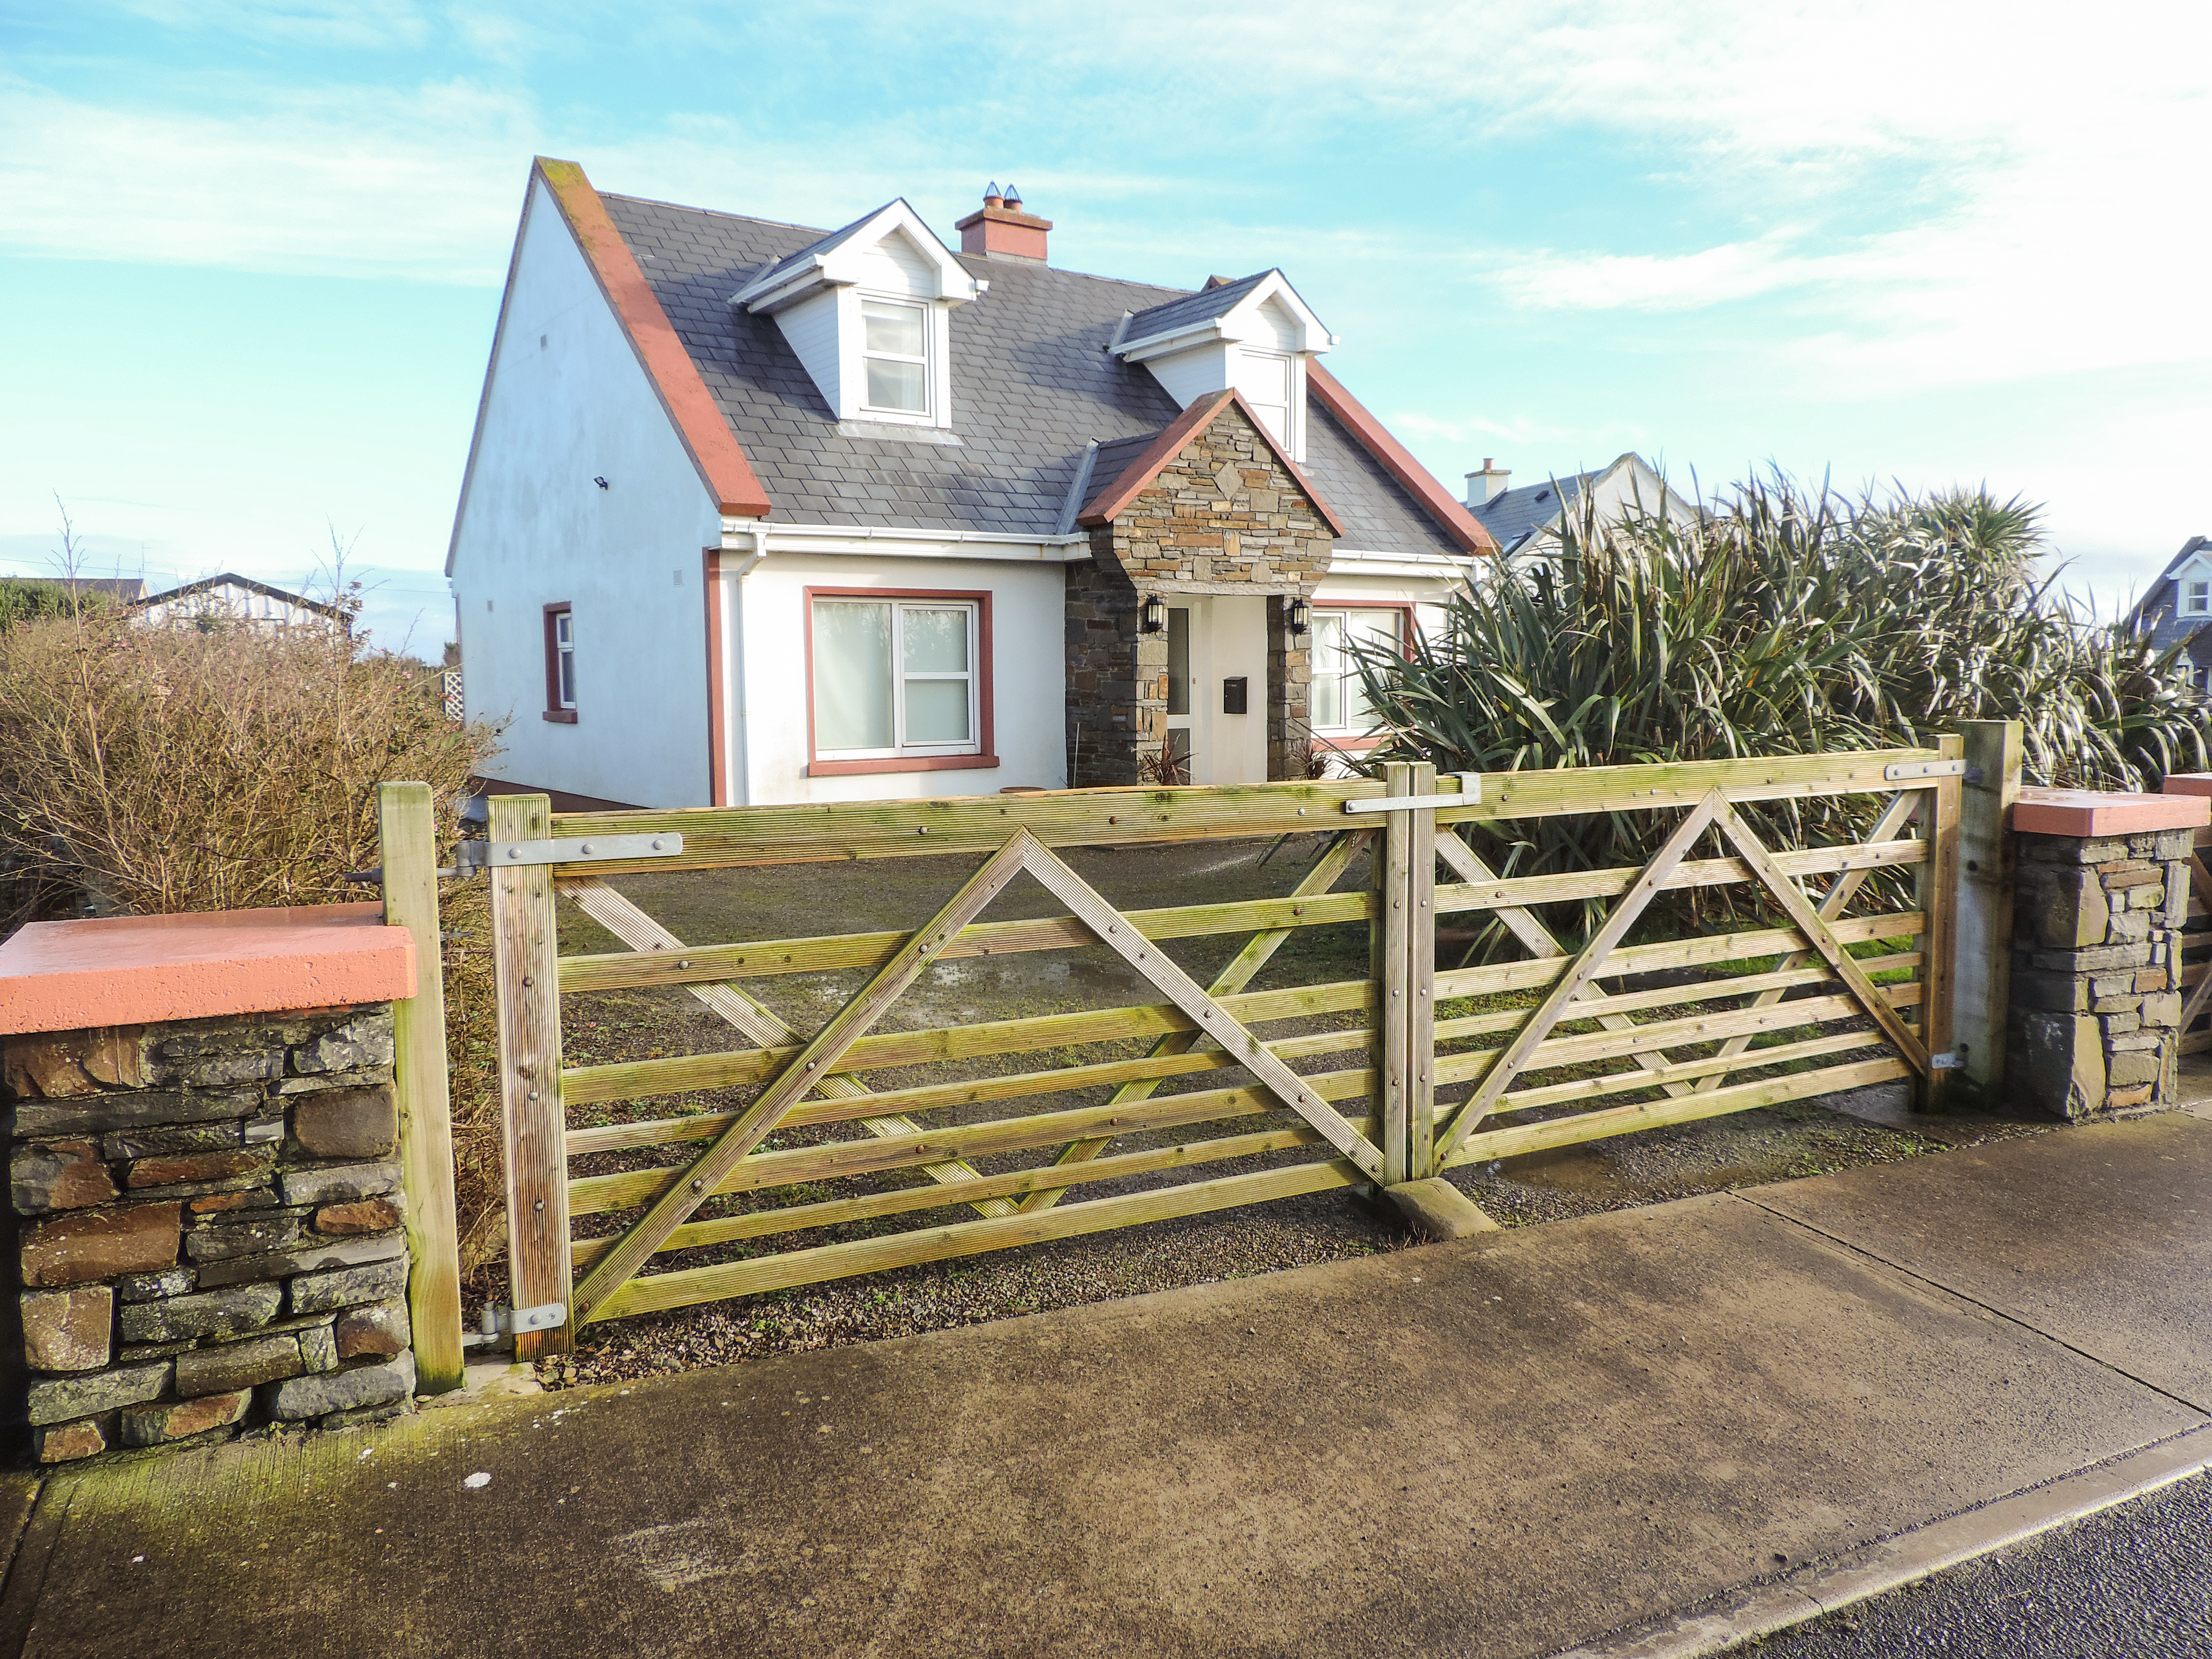 7 Rinevella View, County Clare